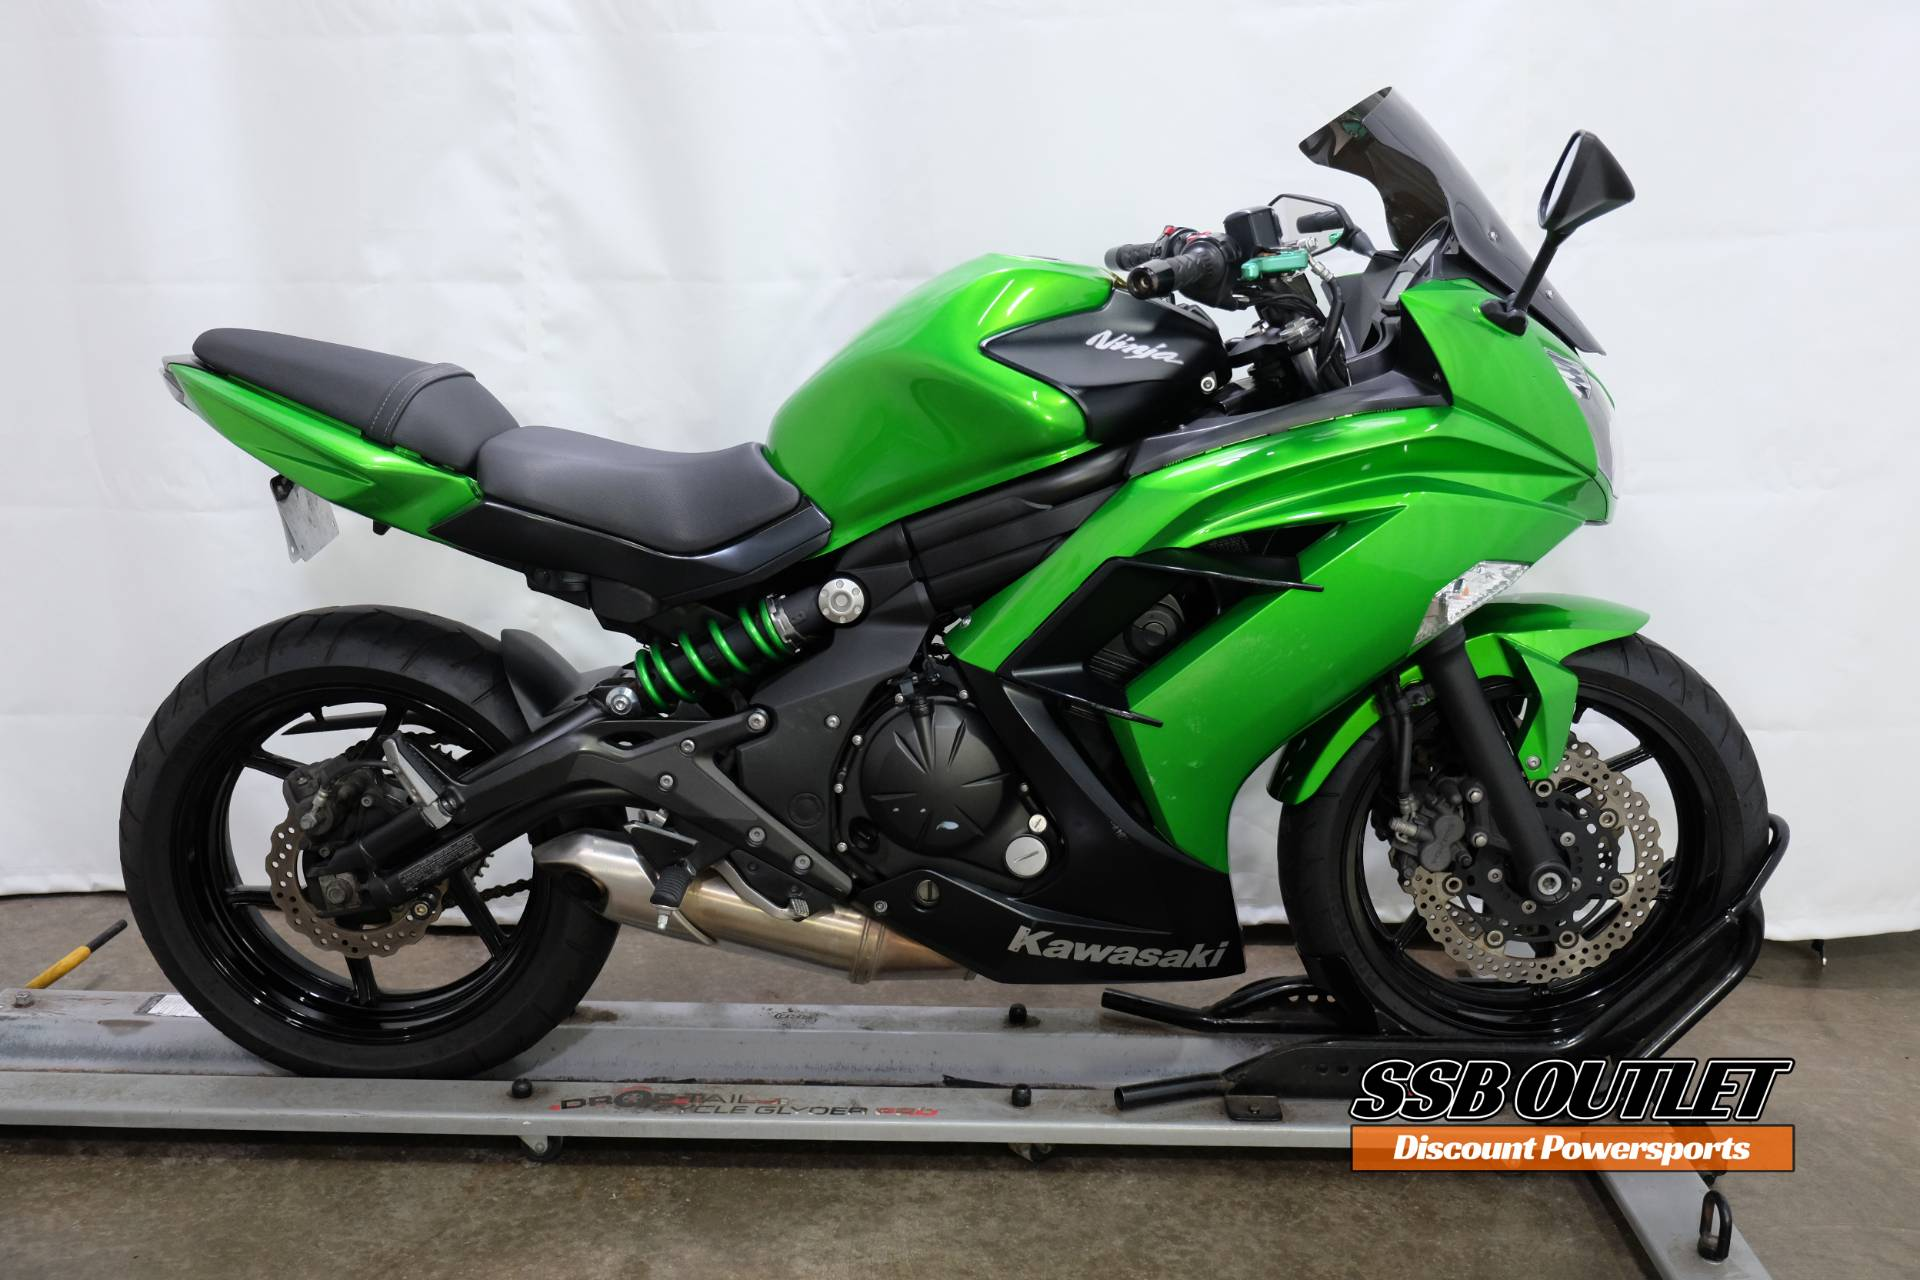 2015 Kawasaki Ninja® 650 in Eden Prairie, Minnesota - Photo 1